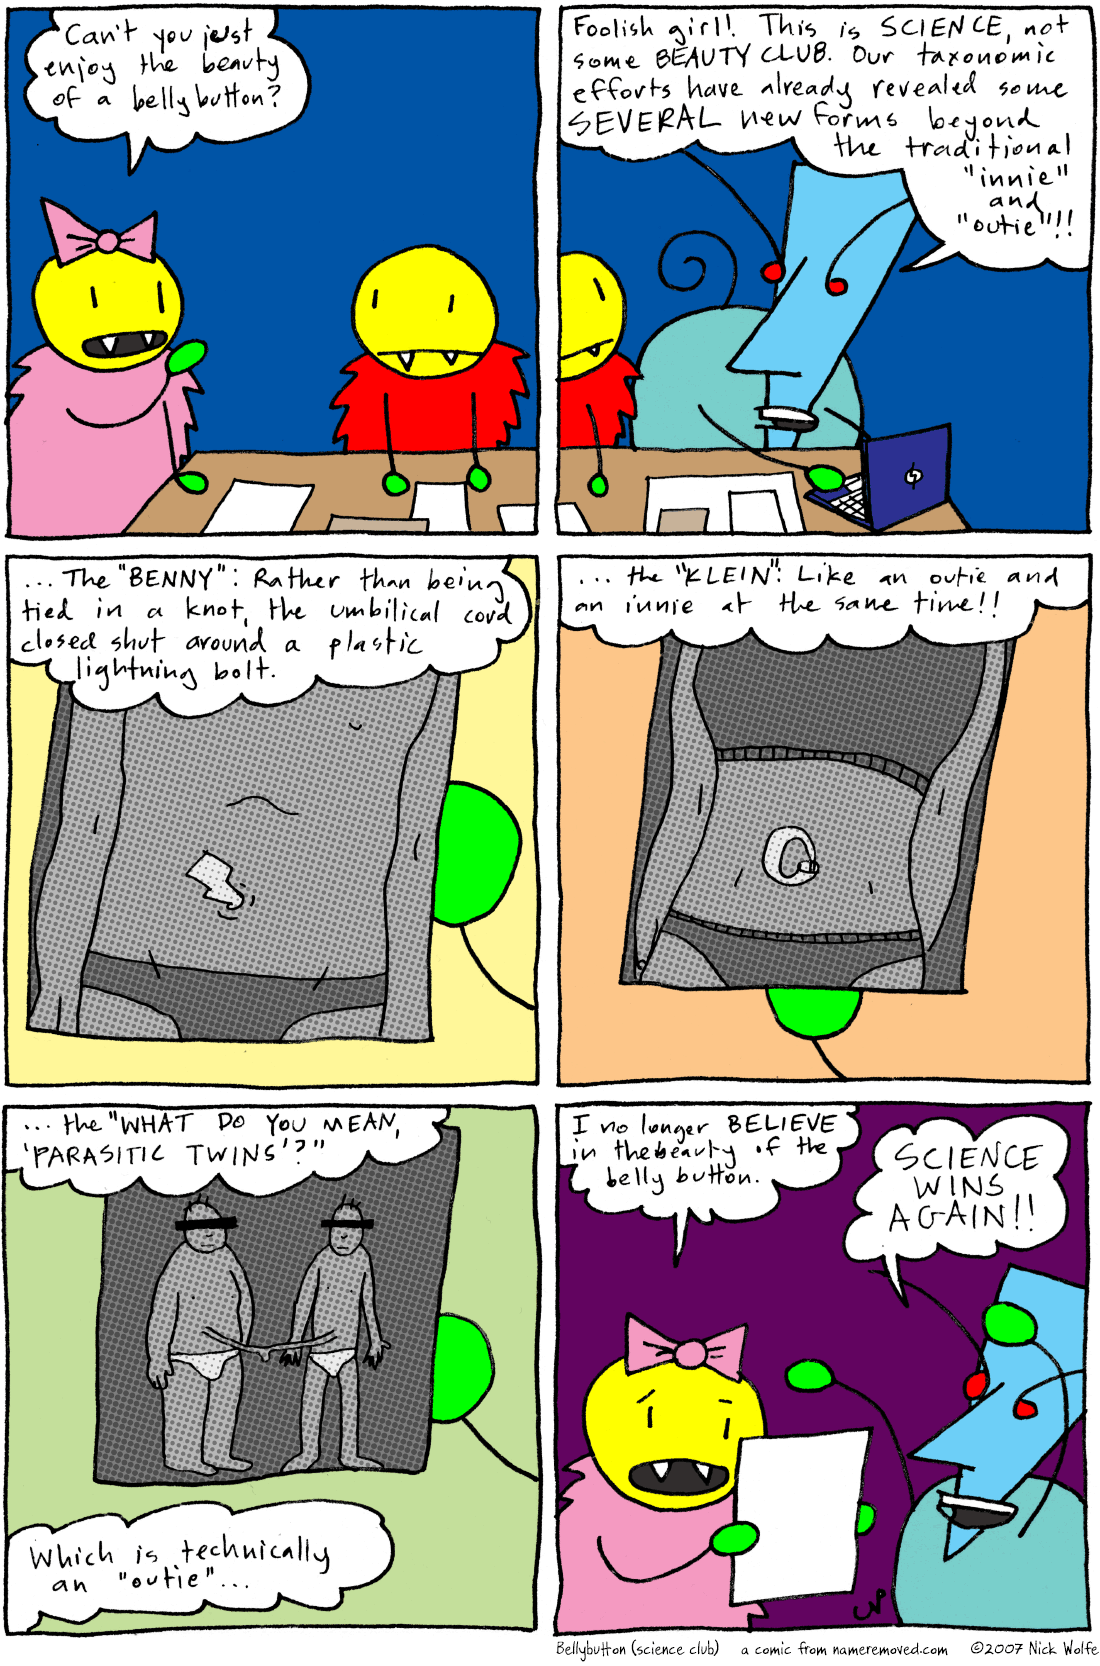 Bellybutton (science club)